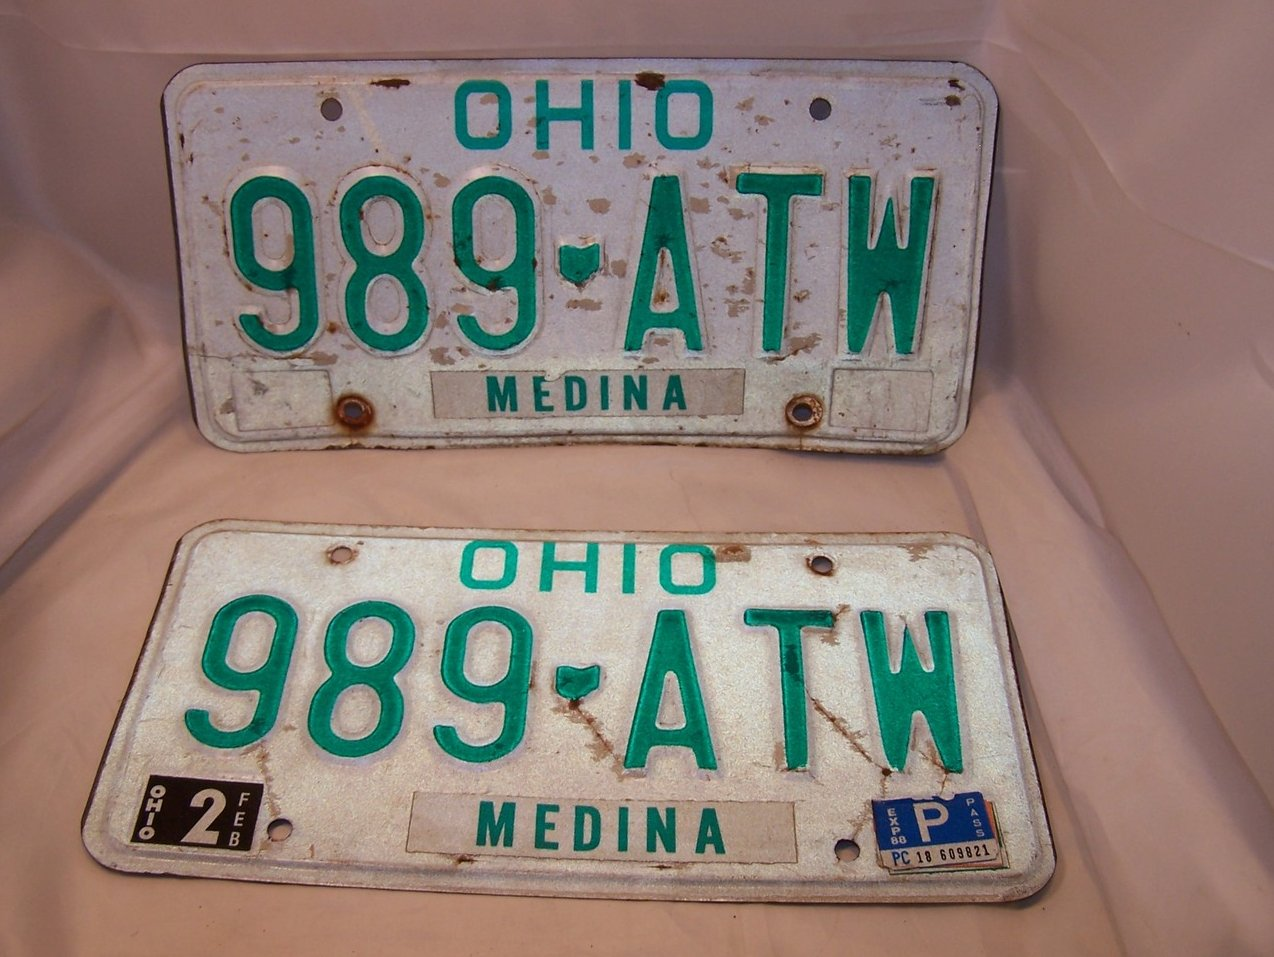 989 ATW Double License Plate Set, Ohio, 30 Years Old